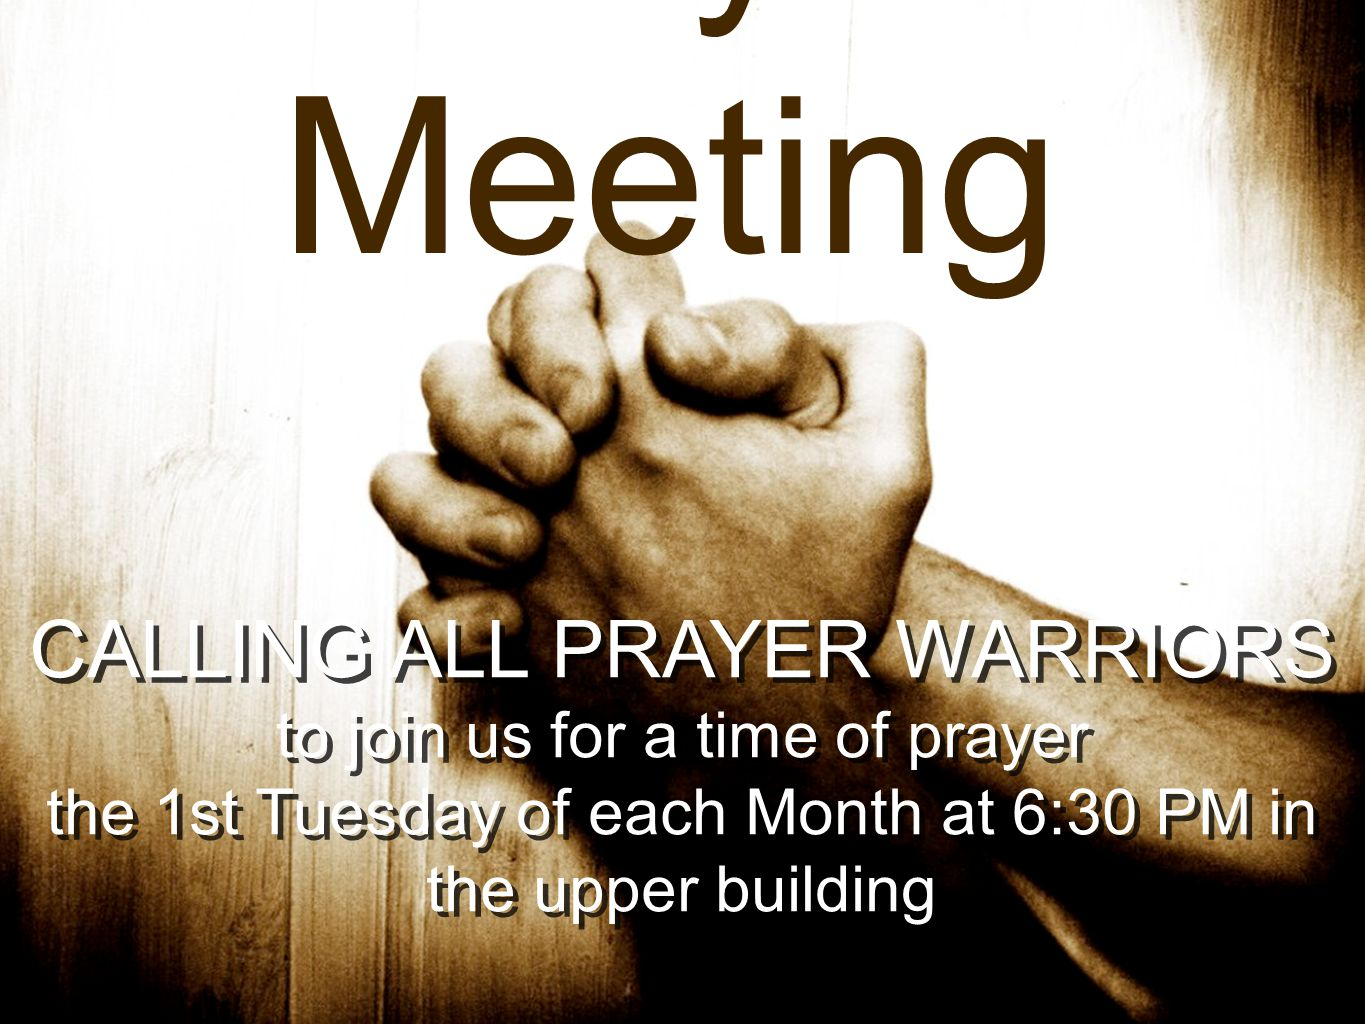 Prayer Meeting CALLING ALL PRAYER WARRIORS to join us for a time of prayer the 1st Tuesday of each Month at 6:30 PM in the upper building CALLING ALL